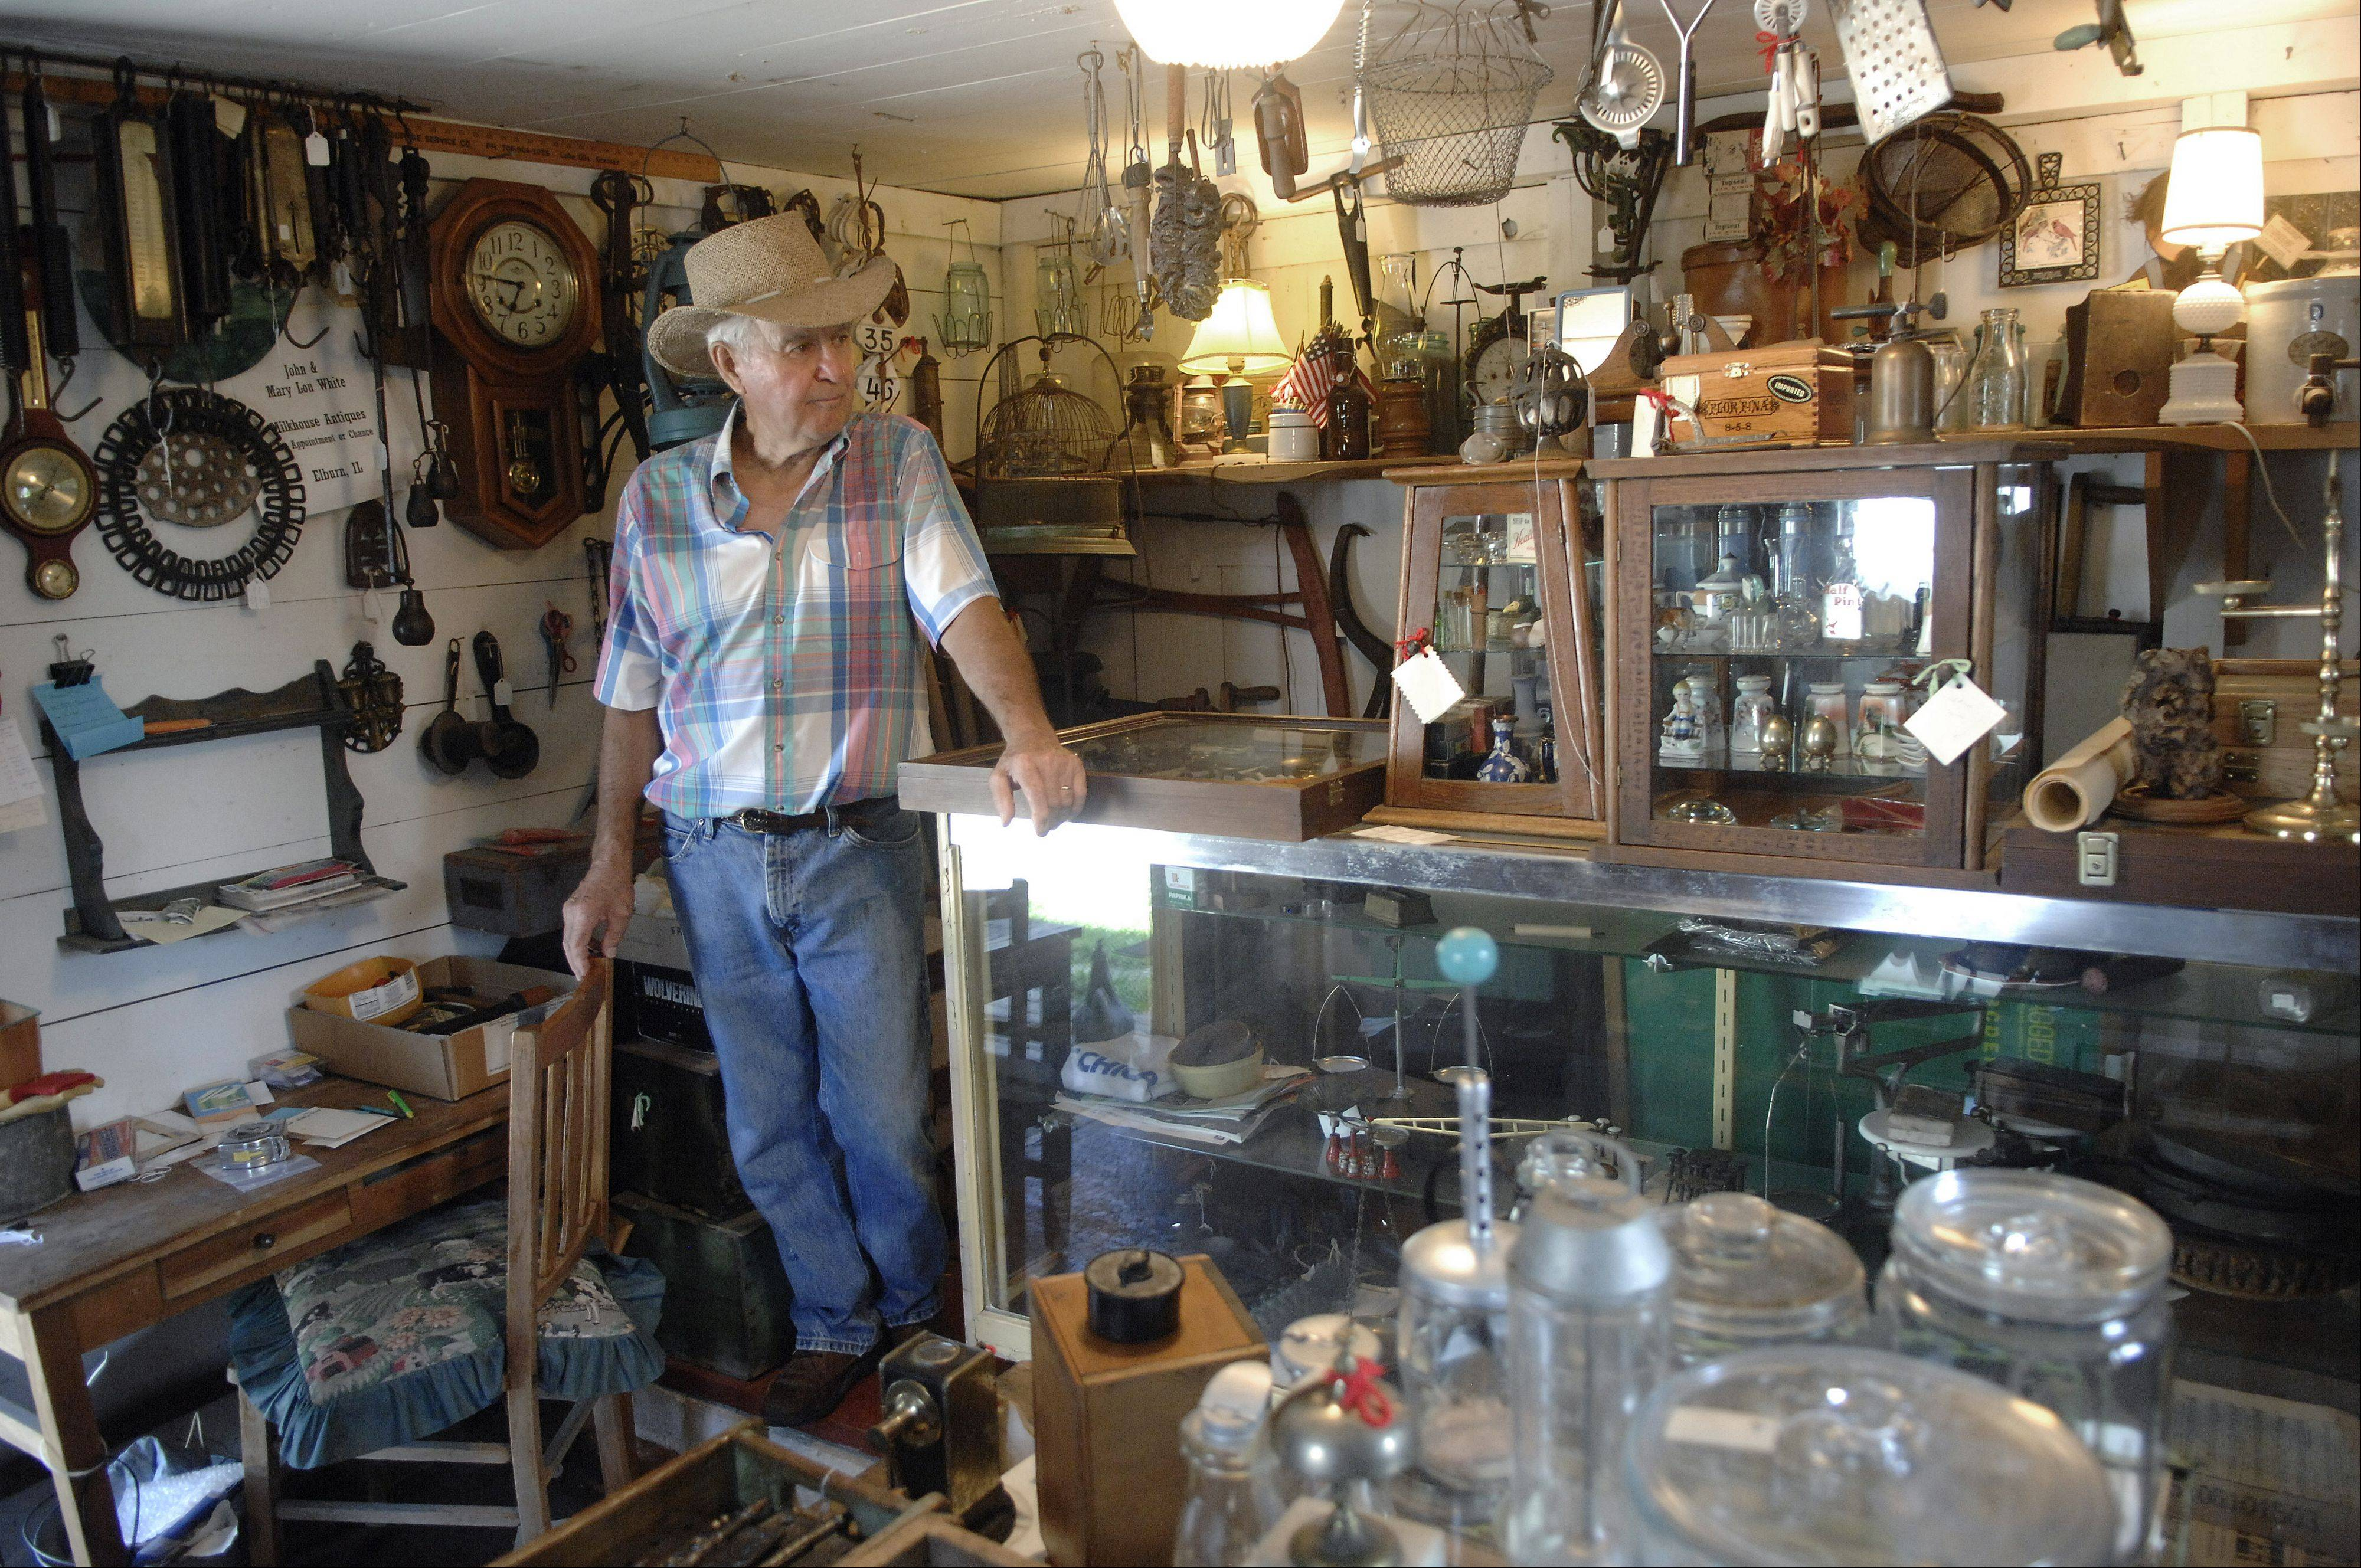 Milkhouse Antiques, a shop in a barn on the White farm, is also full of primitives.